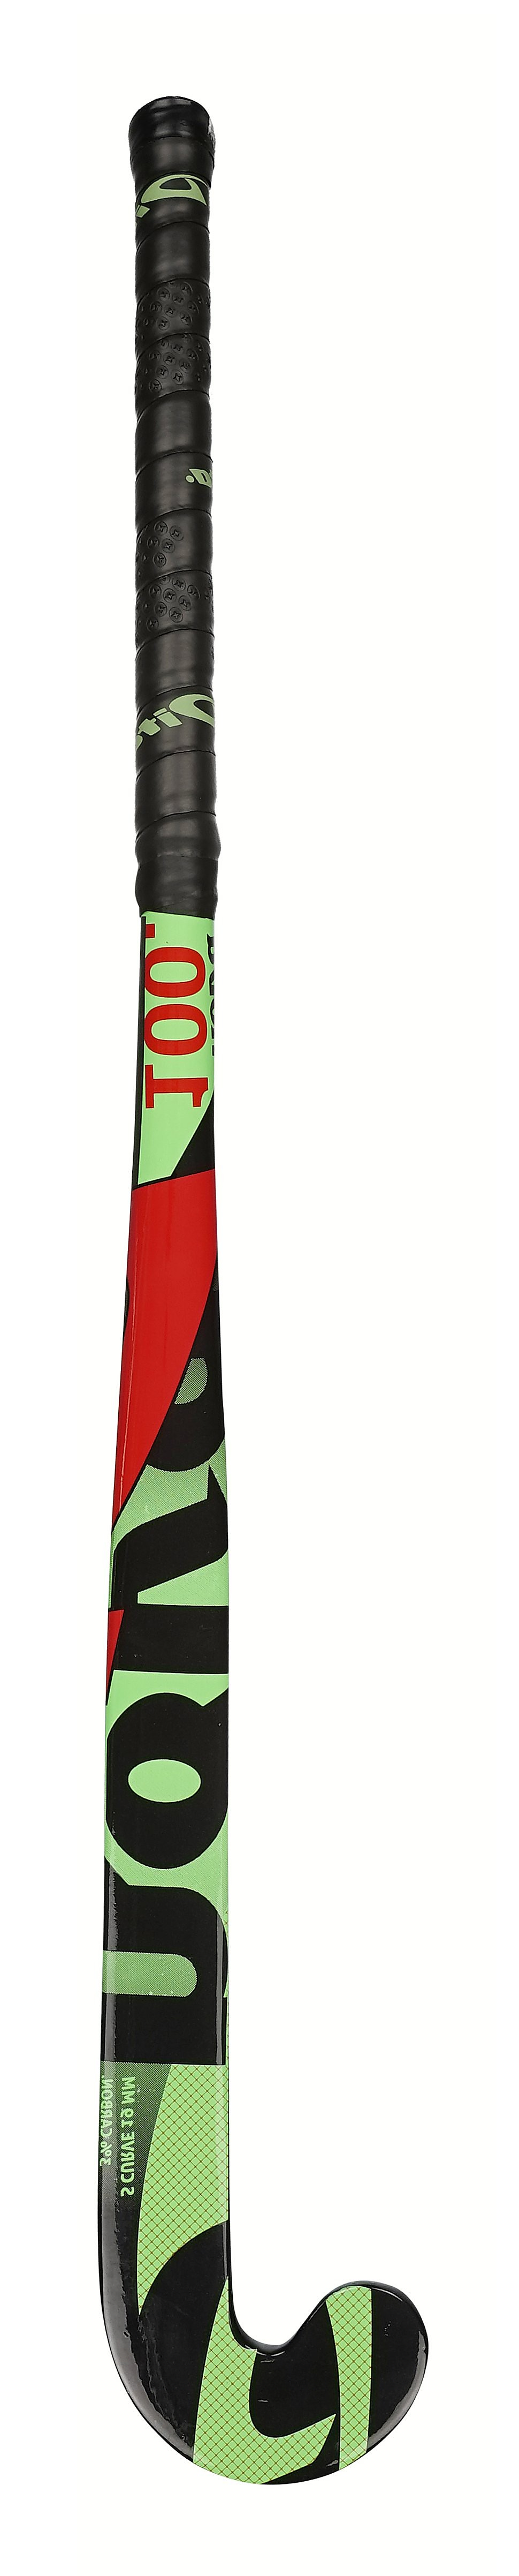 Dita Nova 100 Junior Hockey Stick